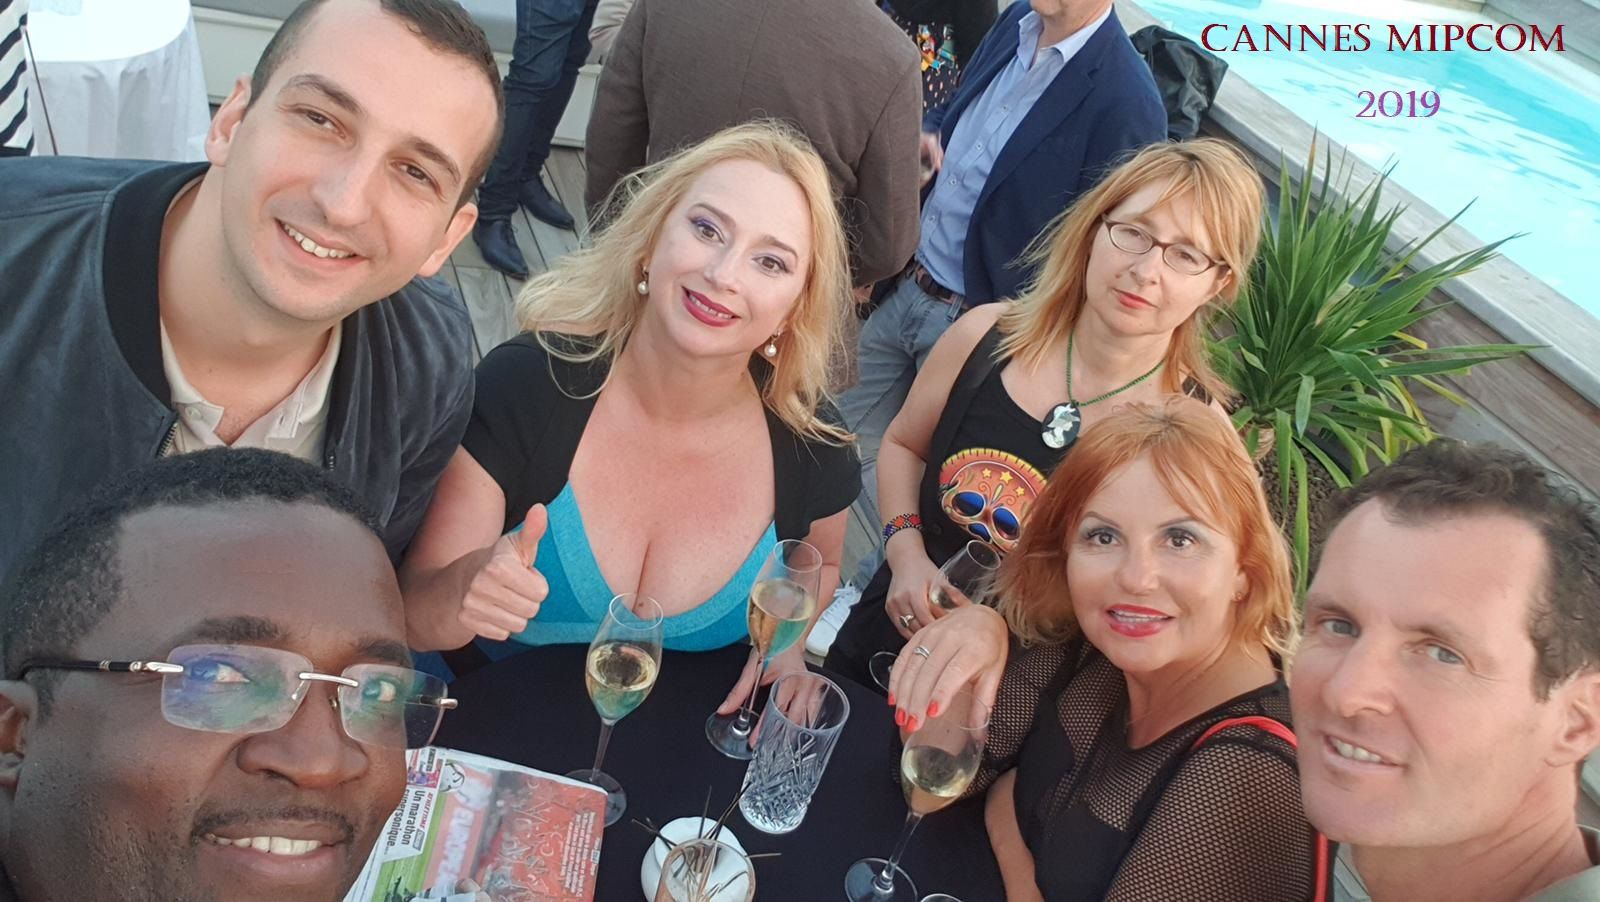 Cannes Mipcom 2019